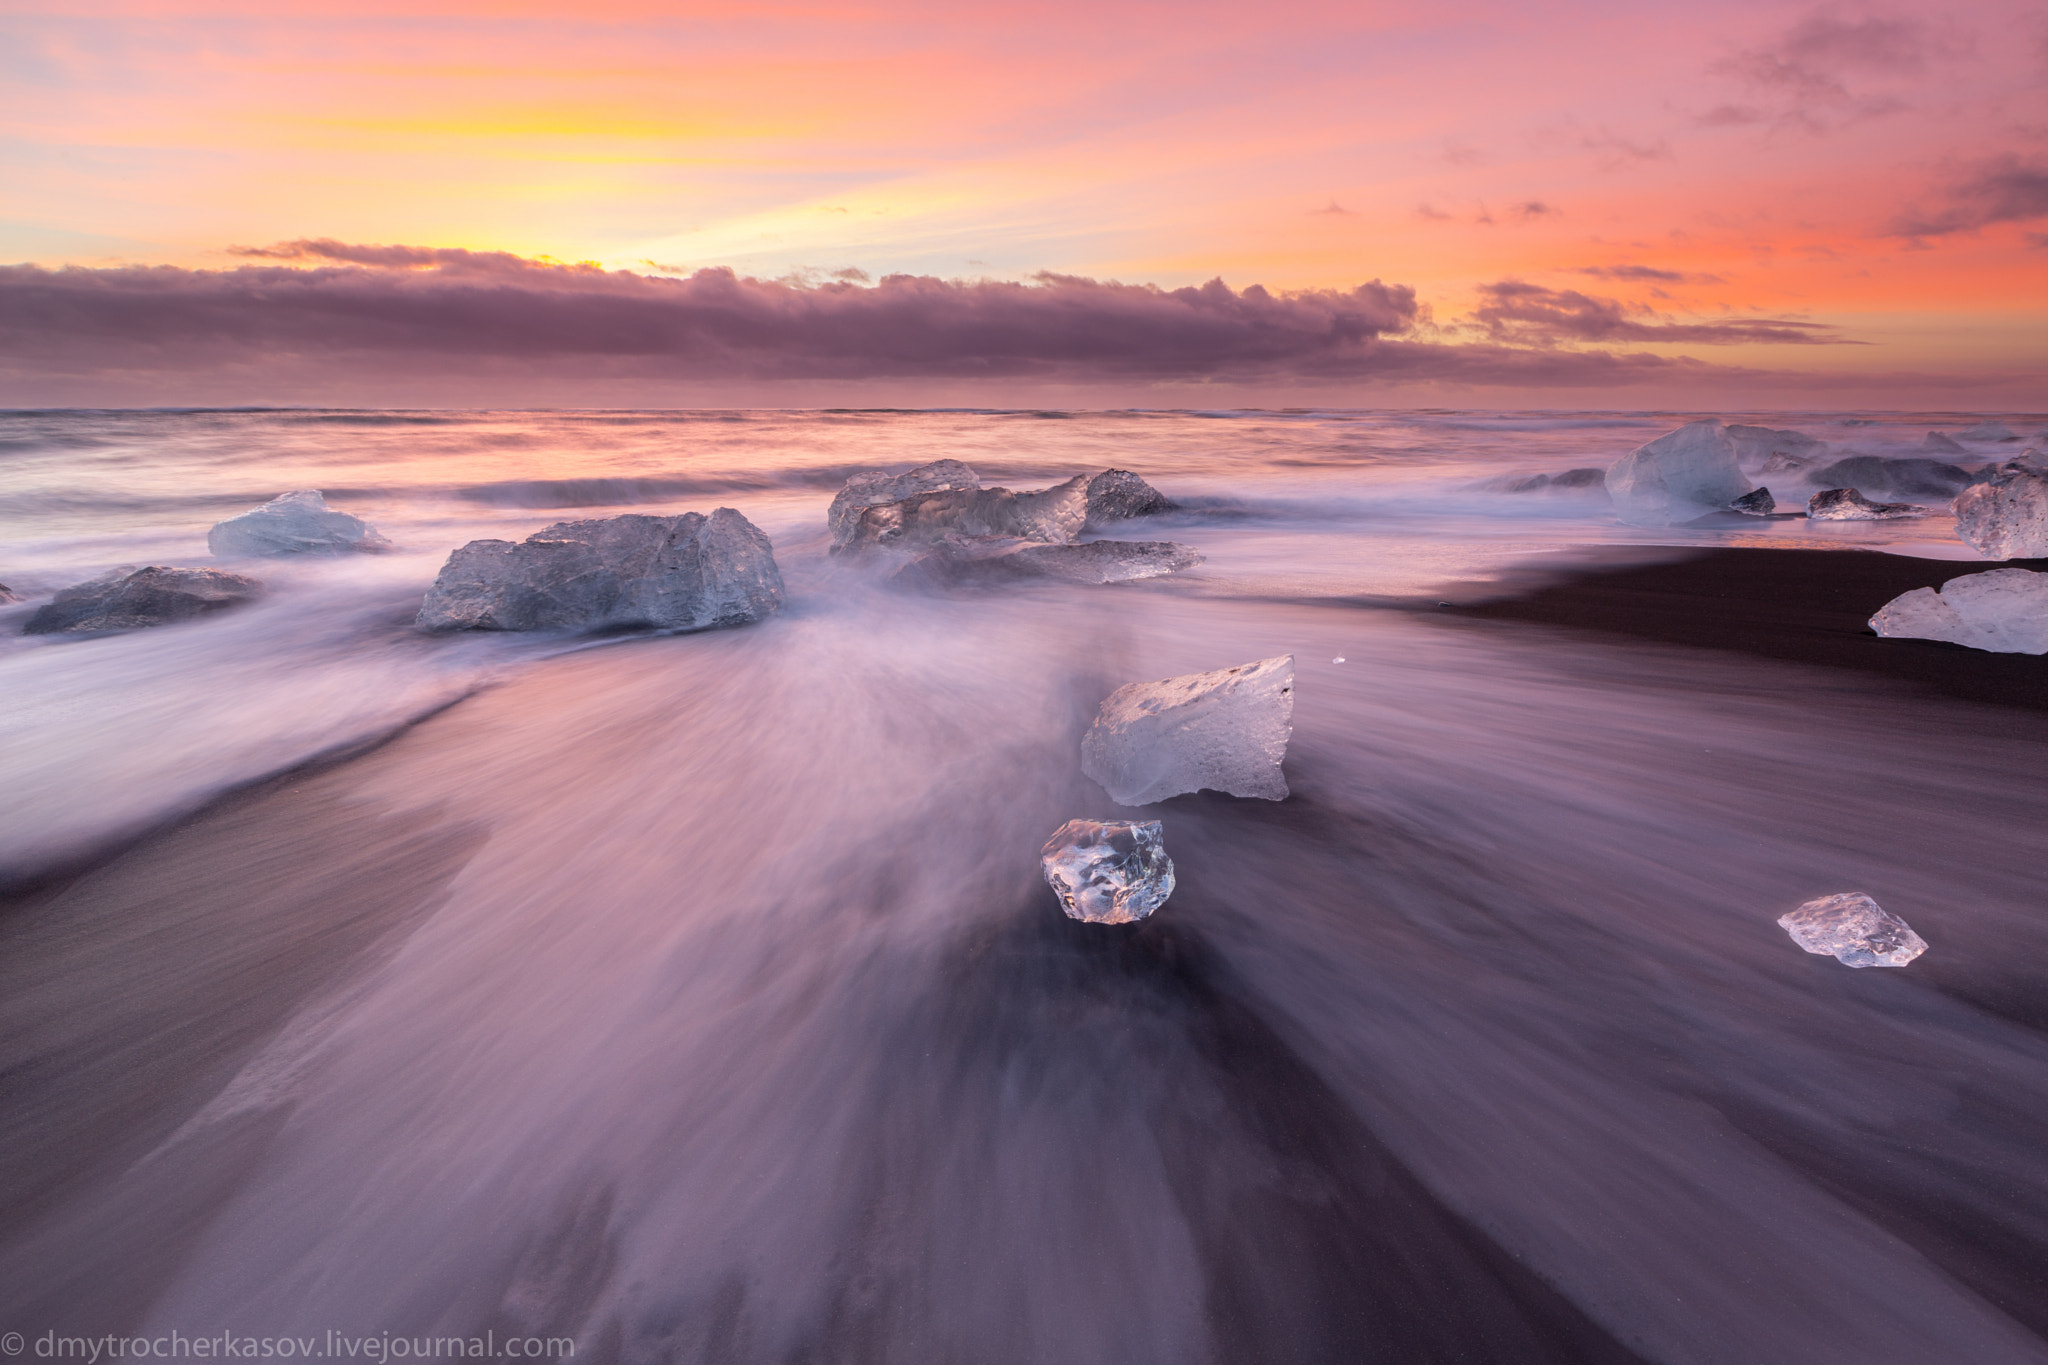 Photograph Ice Diamonds by Dmytro Cherkasov on 500px